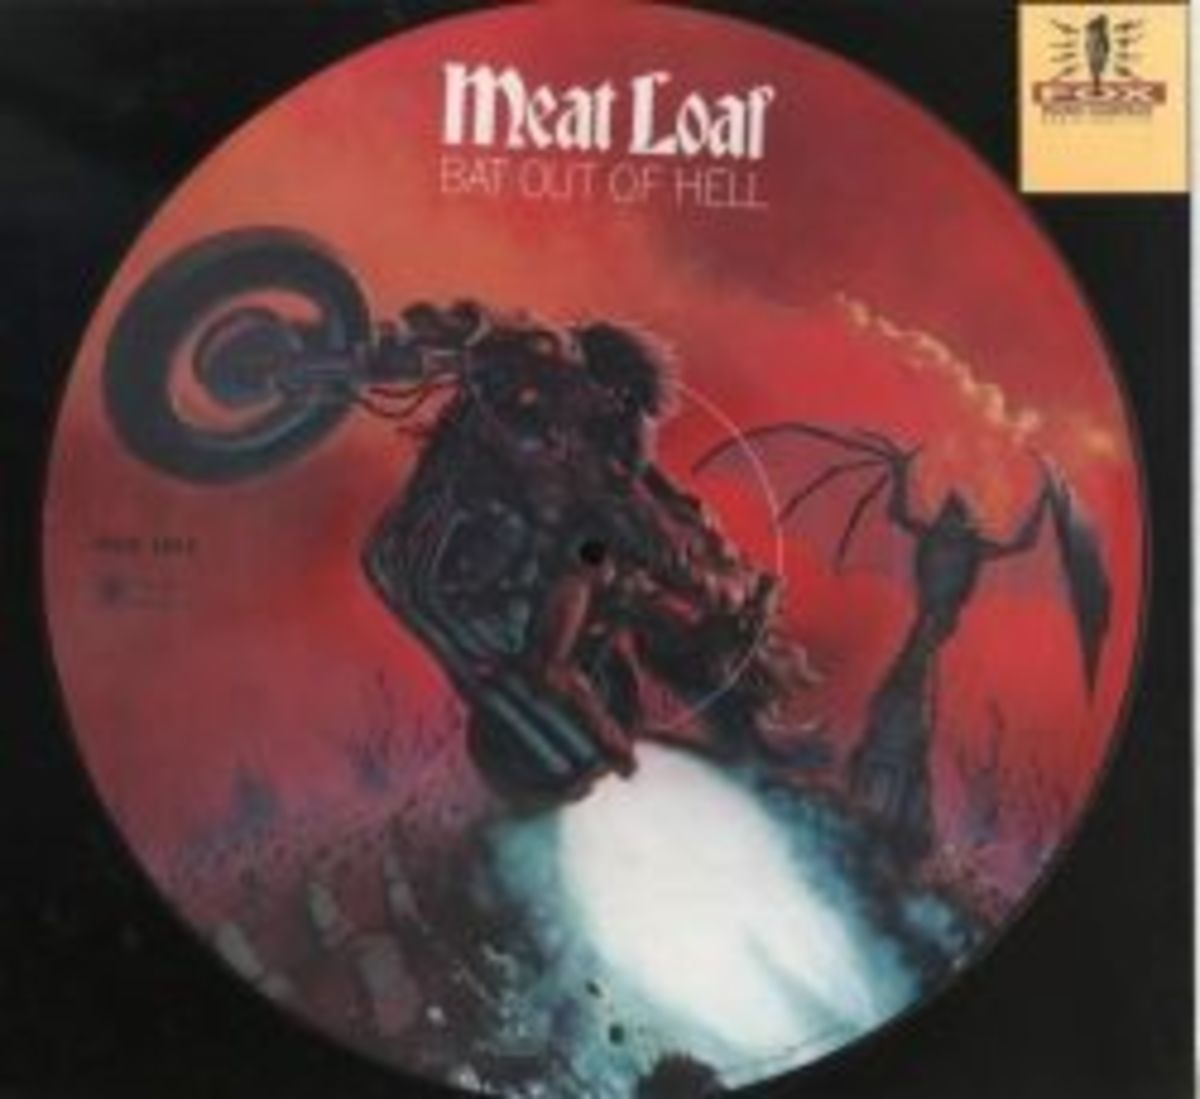 "Meatloaf ""Bat Out Of Hell"" Epic-Cleavland International Records 34974 12"" Vinyl Record (1977)  Picture Disc"